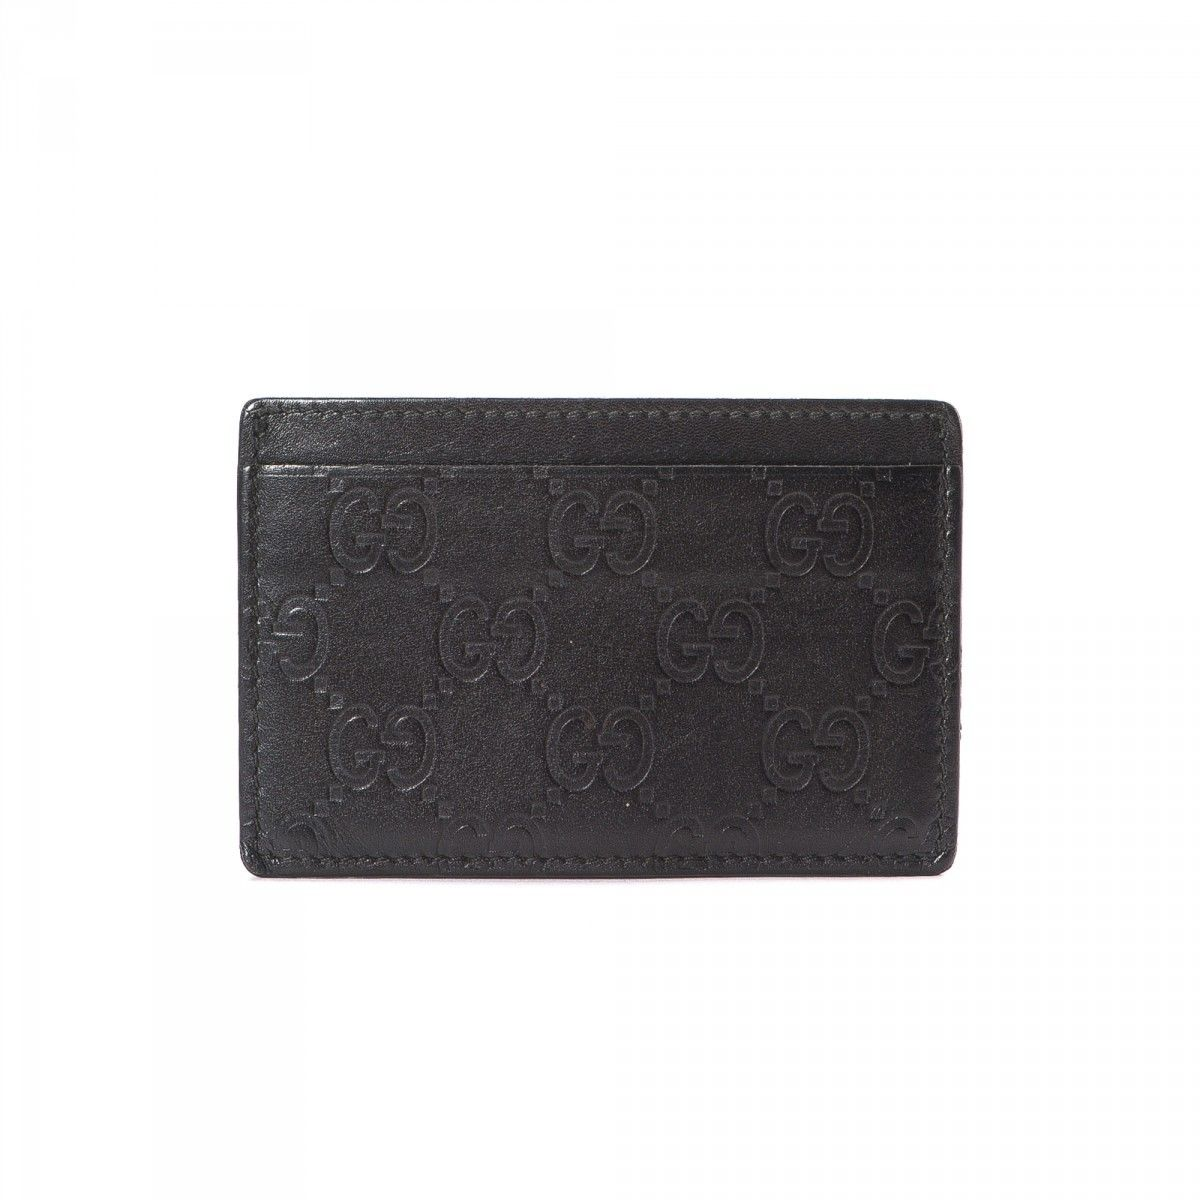 Gucci compact card holder gg leather lxrandco pre owned luxury gucci compact card holder gg leather lxrandco pre owned luxury vintage magicingreecefo Images